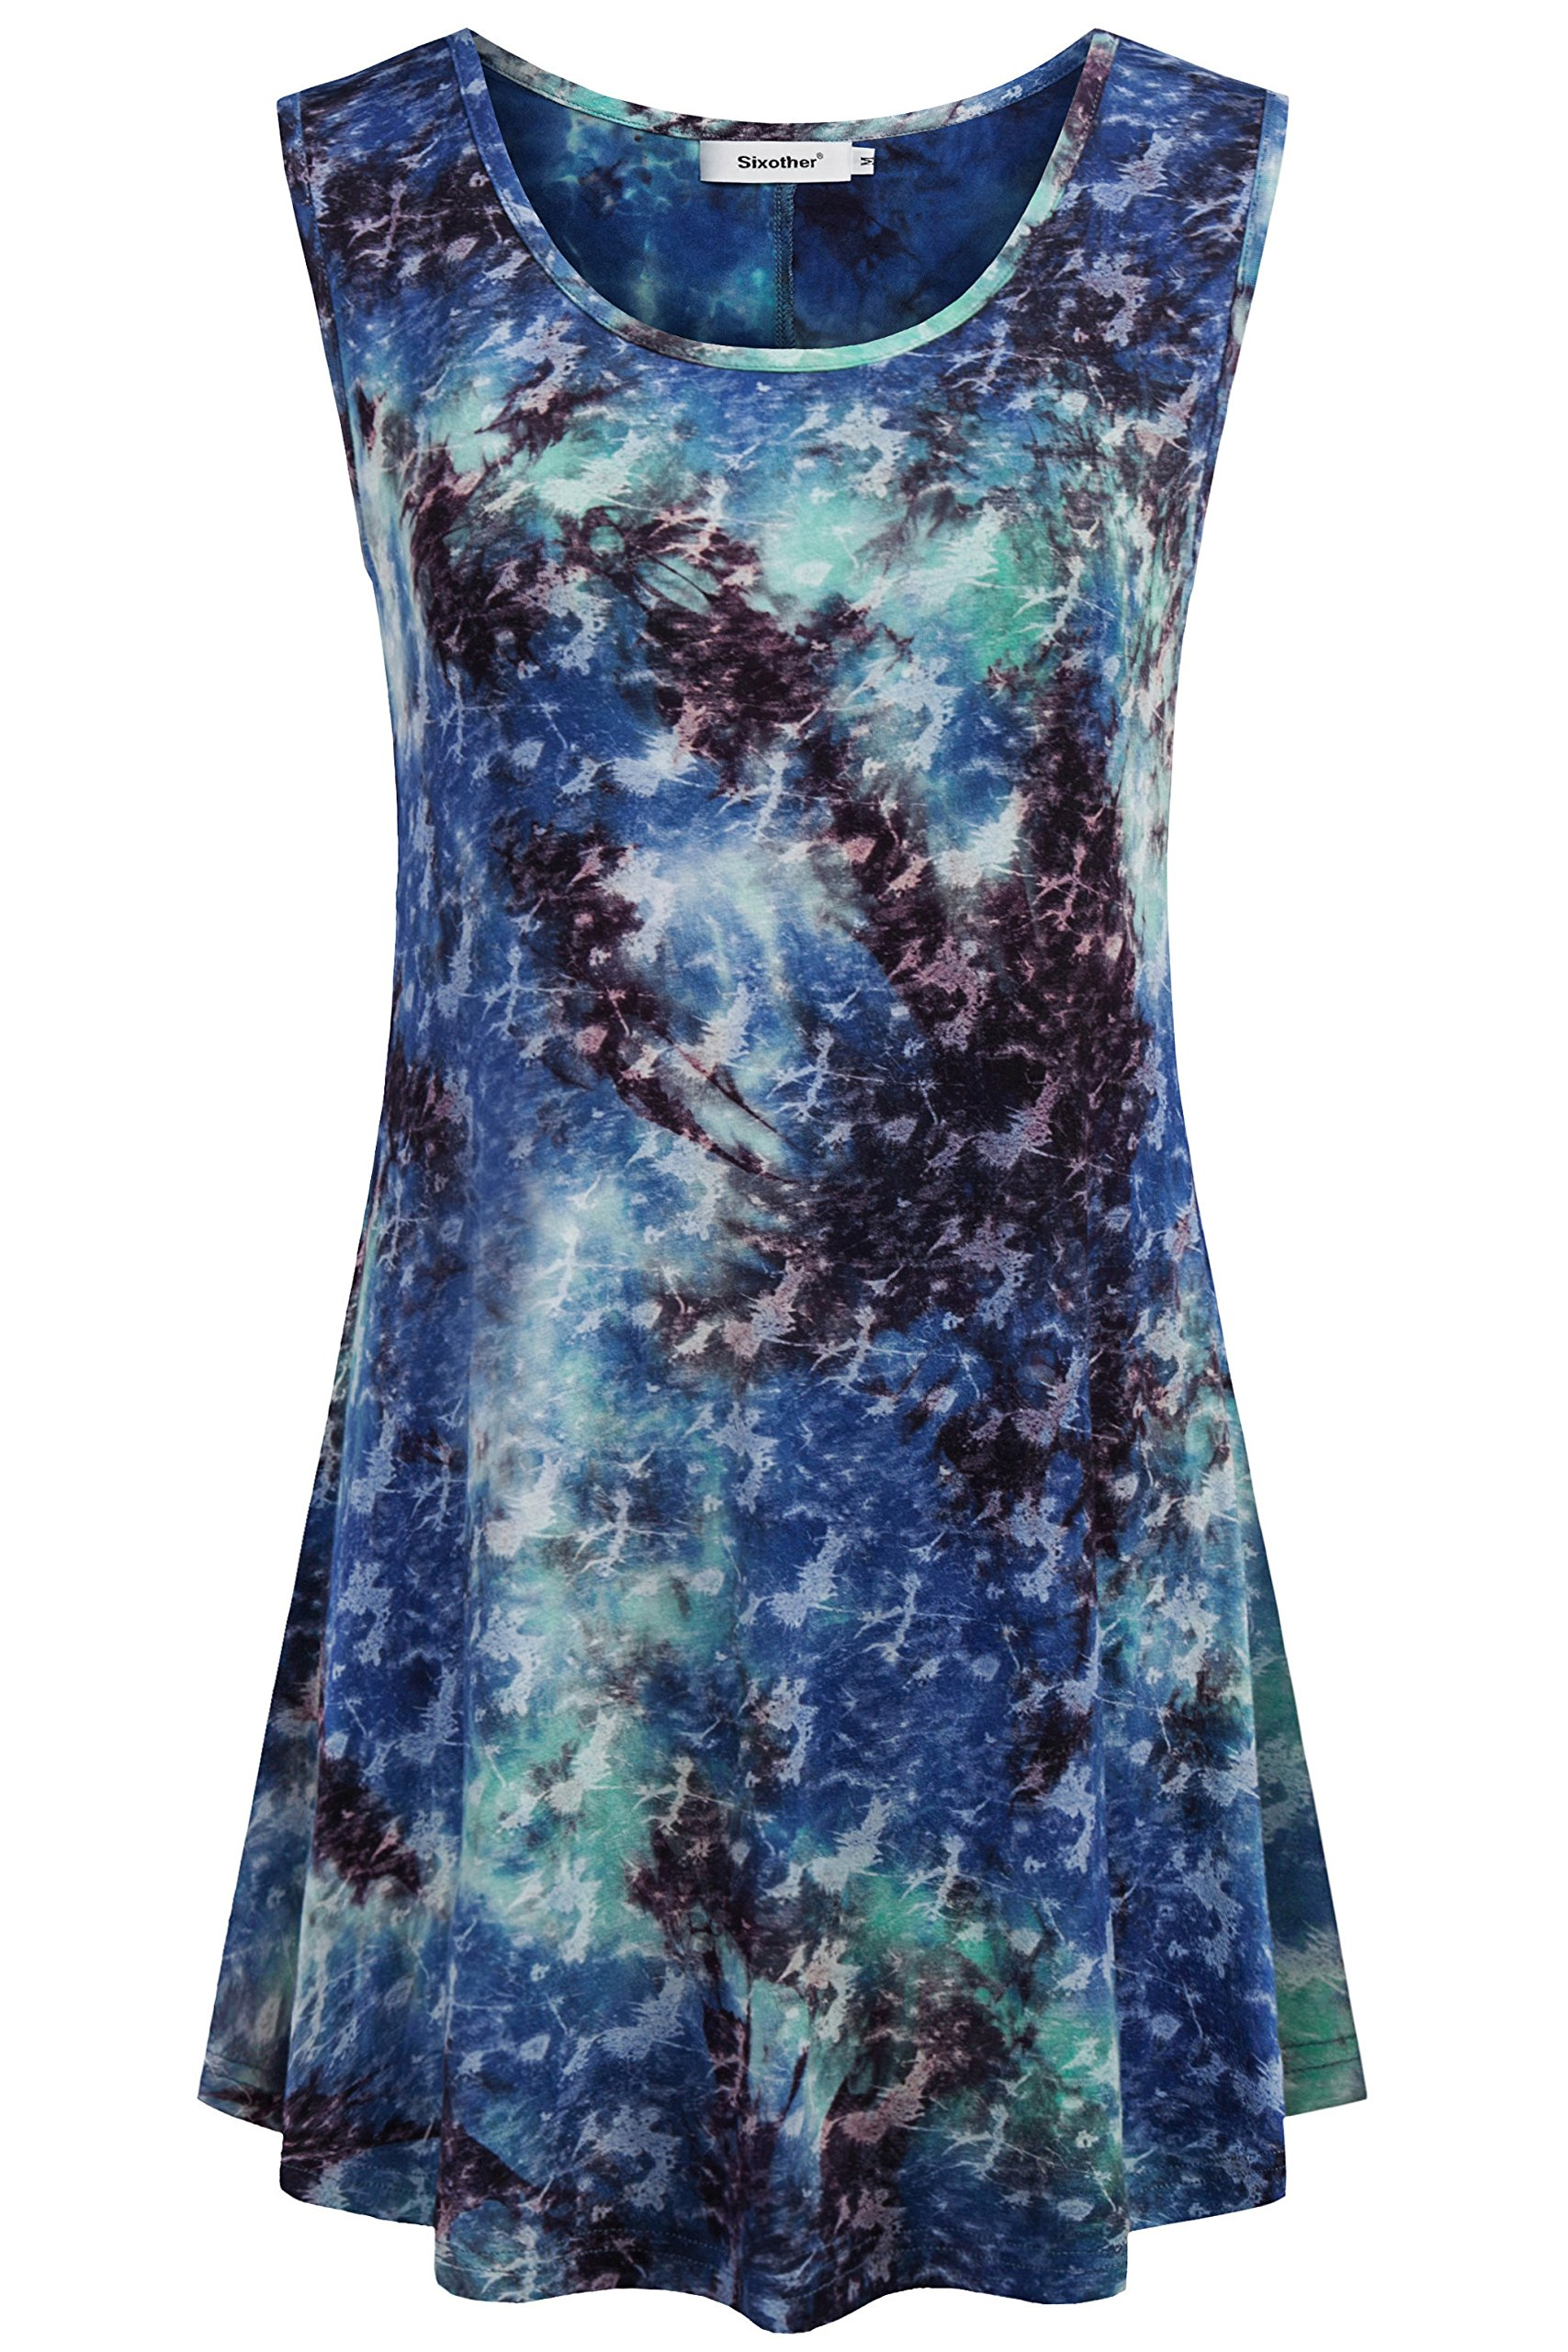 Sixother Cami Tank, Sleeveless Cool Tunics for Summer Scoop Neck Tops for Women Tie Dye Shirts Plus Size Business Blouses for Woman M by Sixother (Image #1)